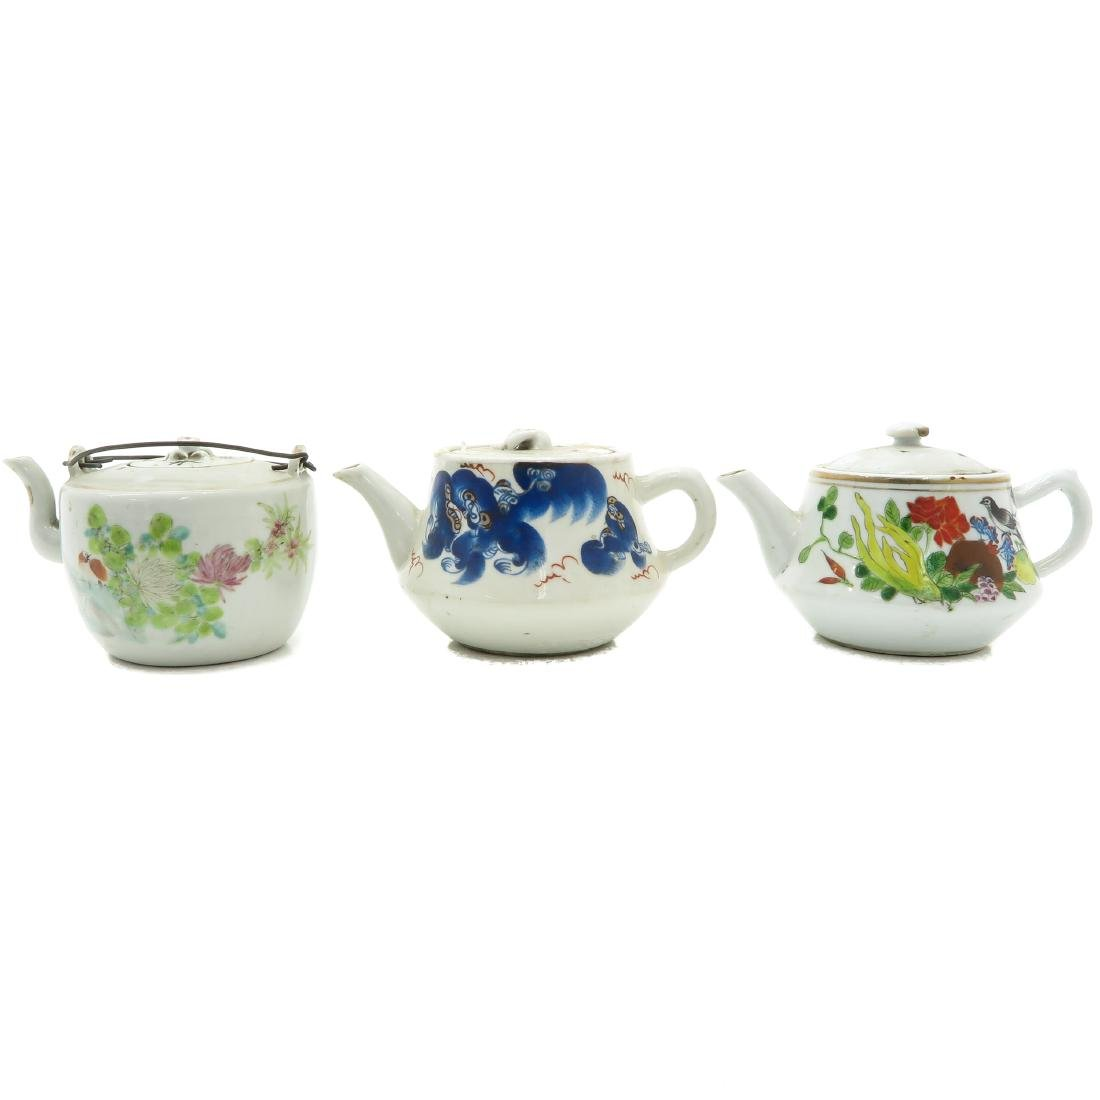 Lot of 3 Teapots